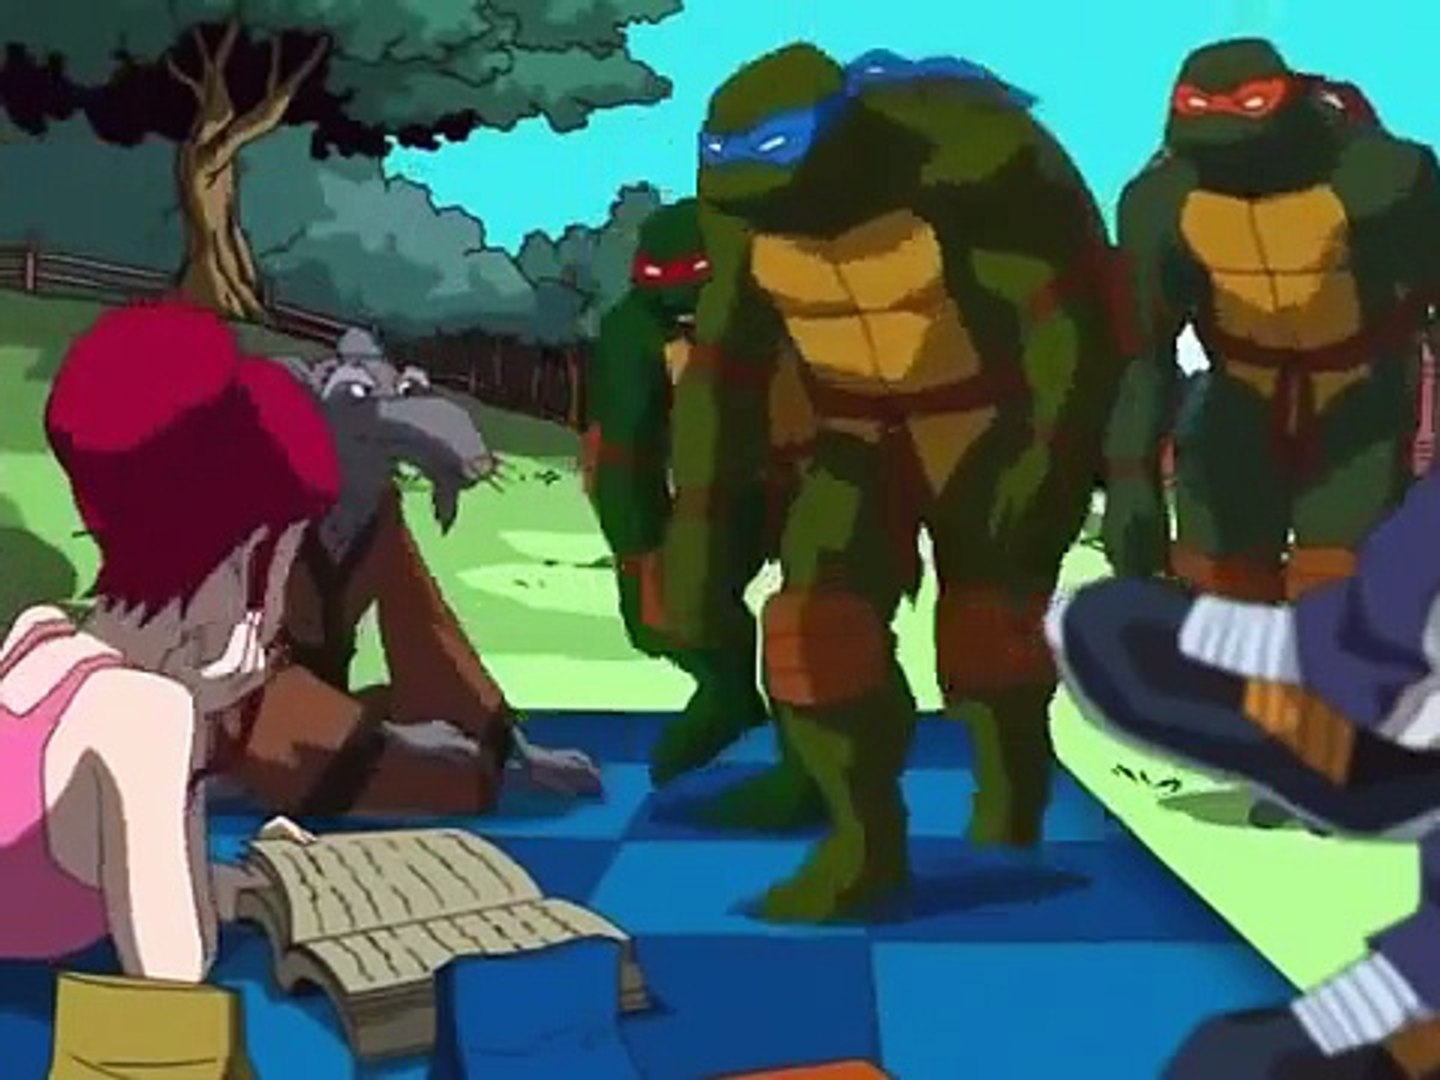 Tmnt S02e09 Reflections Widescreen Dailymotion Video